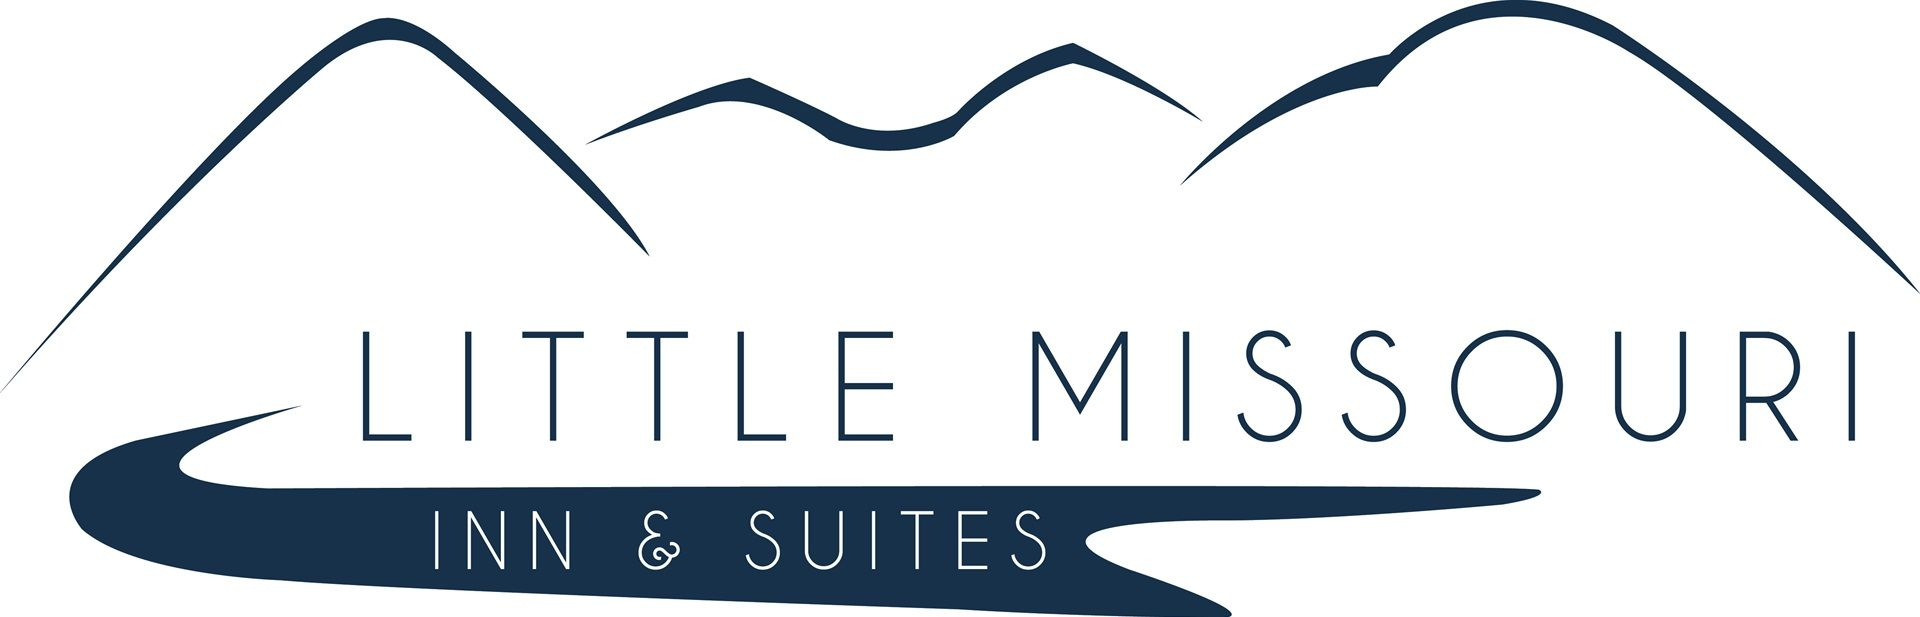 Little Missouri Inn & Suites Watford City